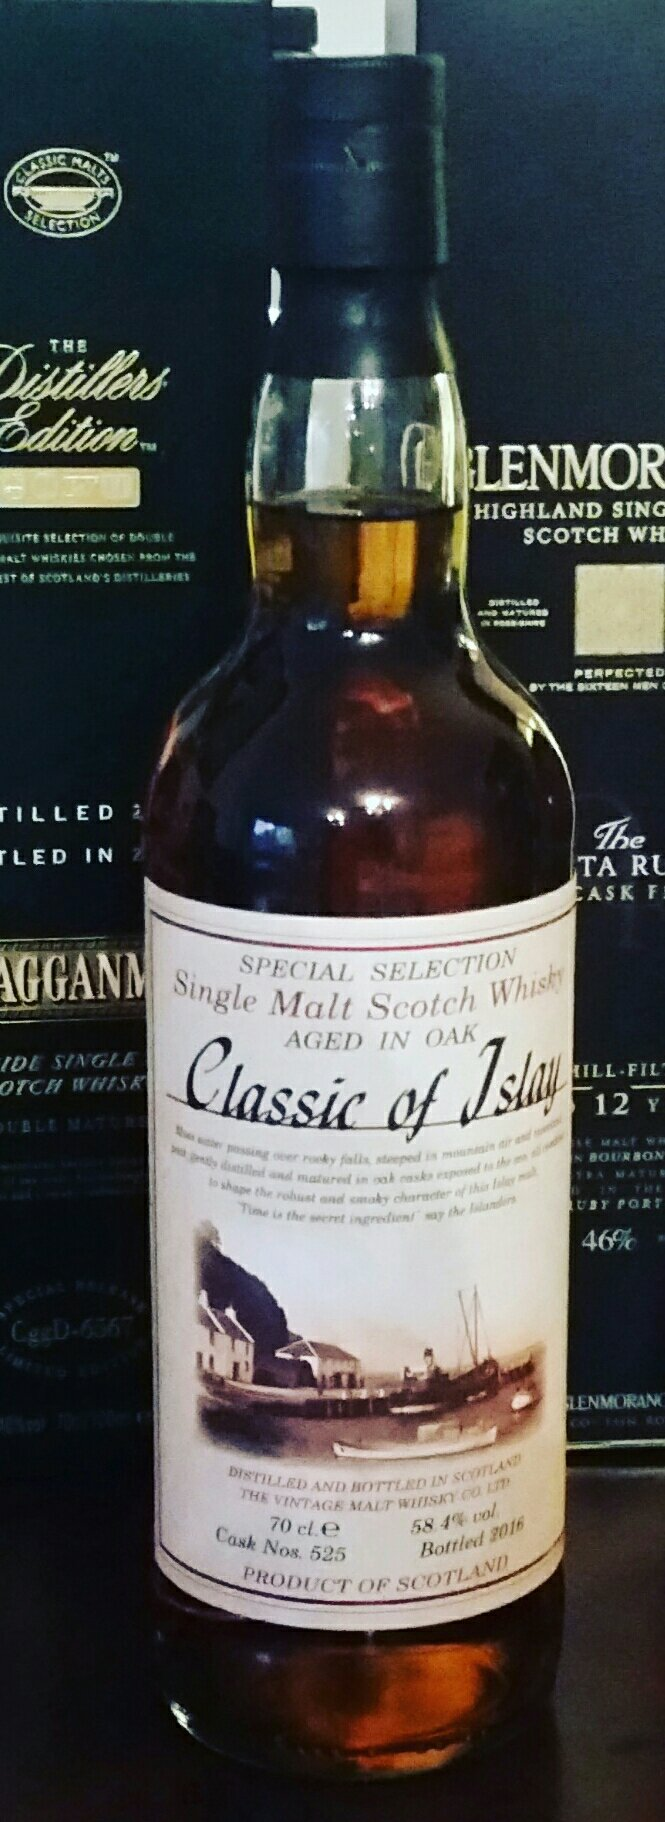 Classic of Islay 2016, cask #525